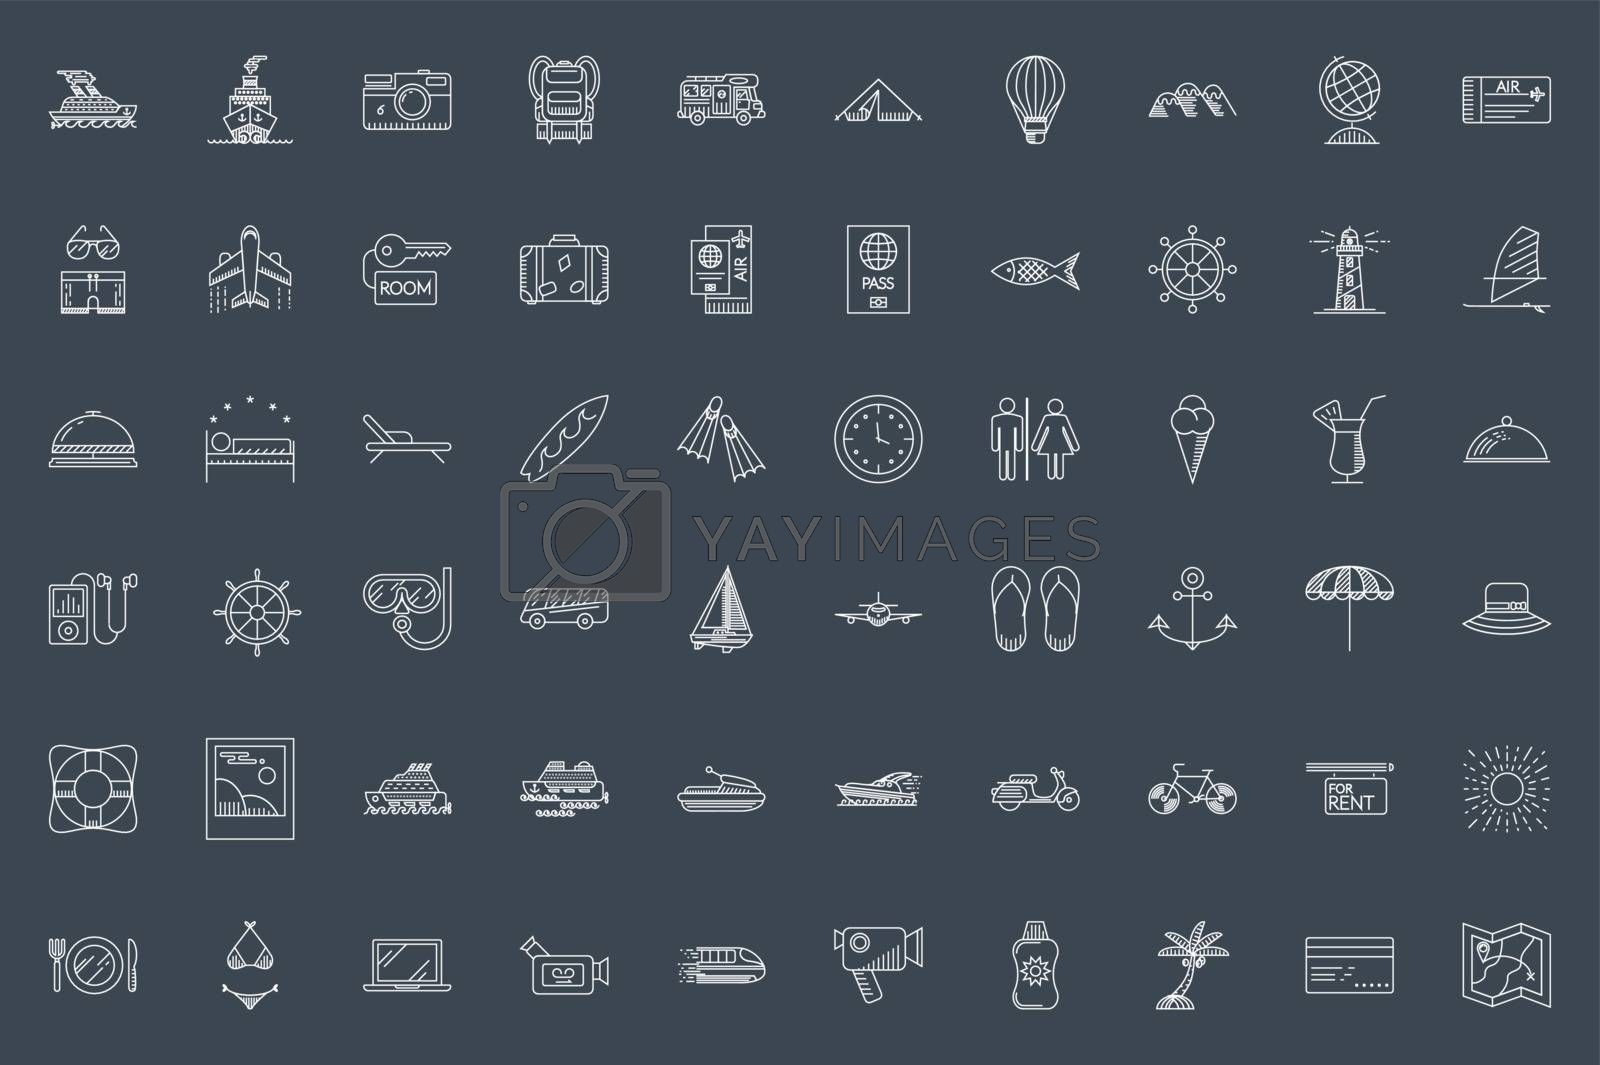 Travel Thin Line Related Icons Set on Black Background. Summer Holidays, Vacation and Travel. Simple Mono Linear Pictogram Pack Stroke Vector logo Concept for Web. Editable Stroke. 48x48 Pixel Perfect